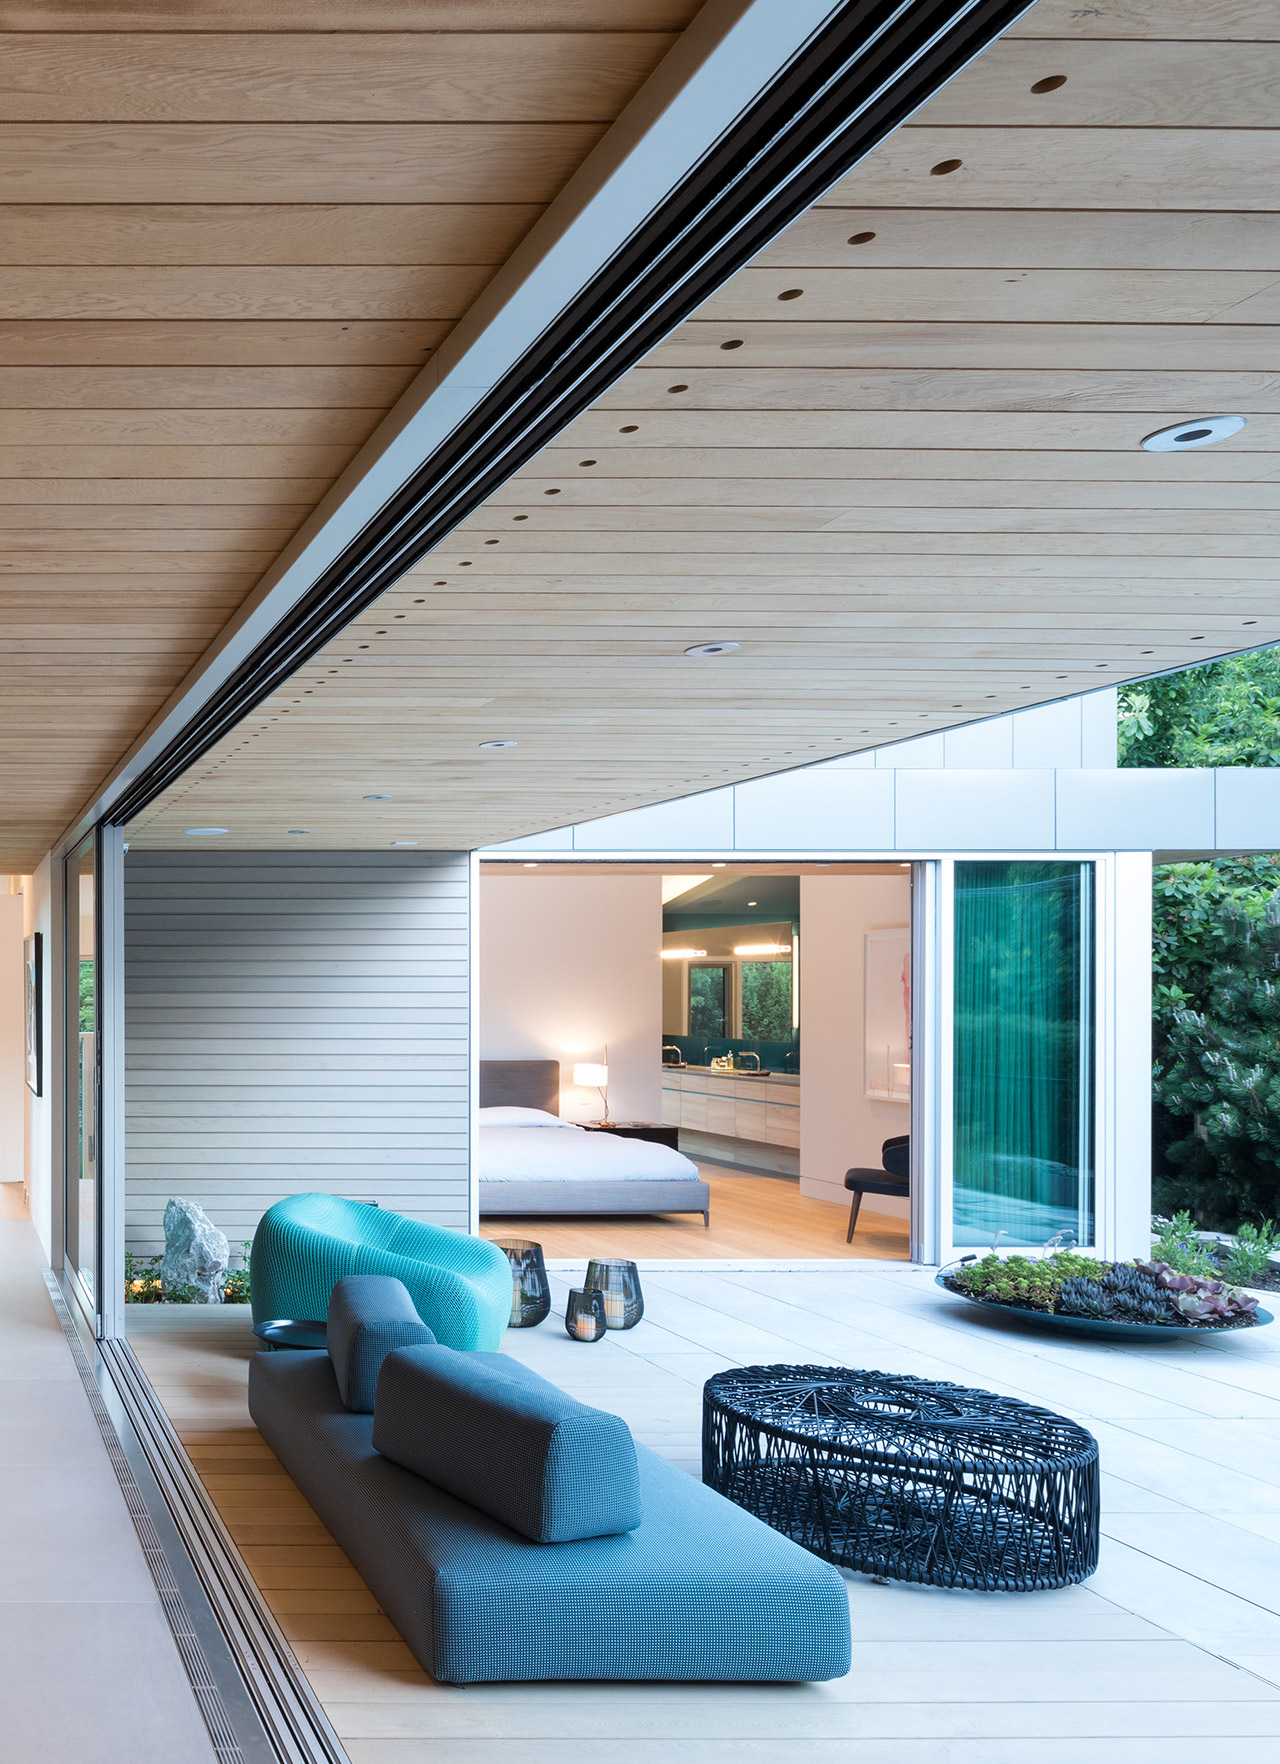 Large sliding panel doors opens up into outdoor patio space